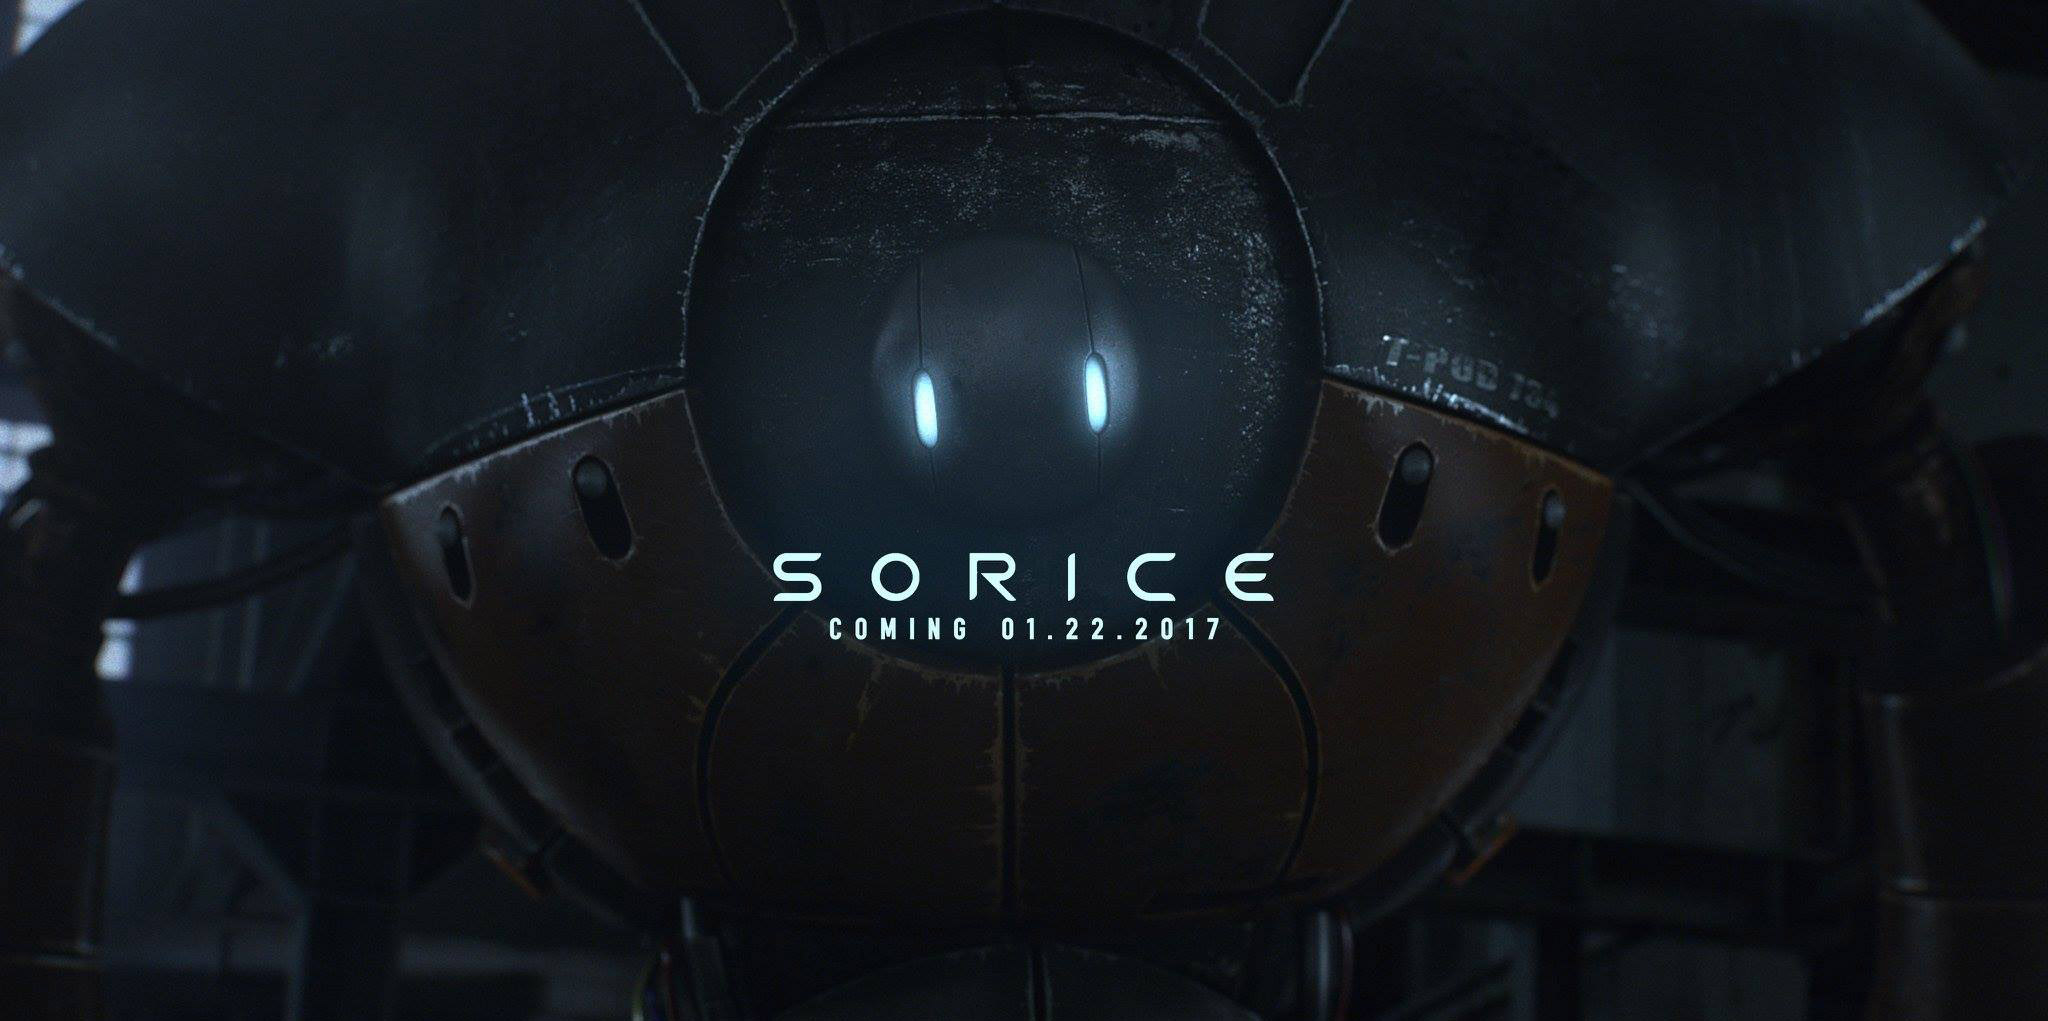 sorice-poster-date